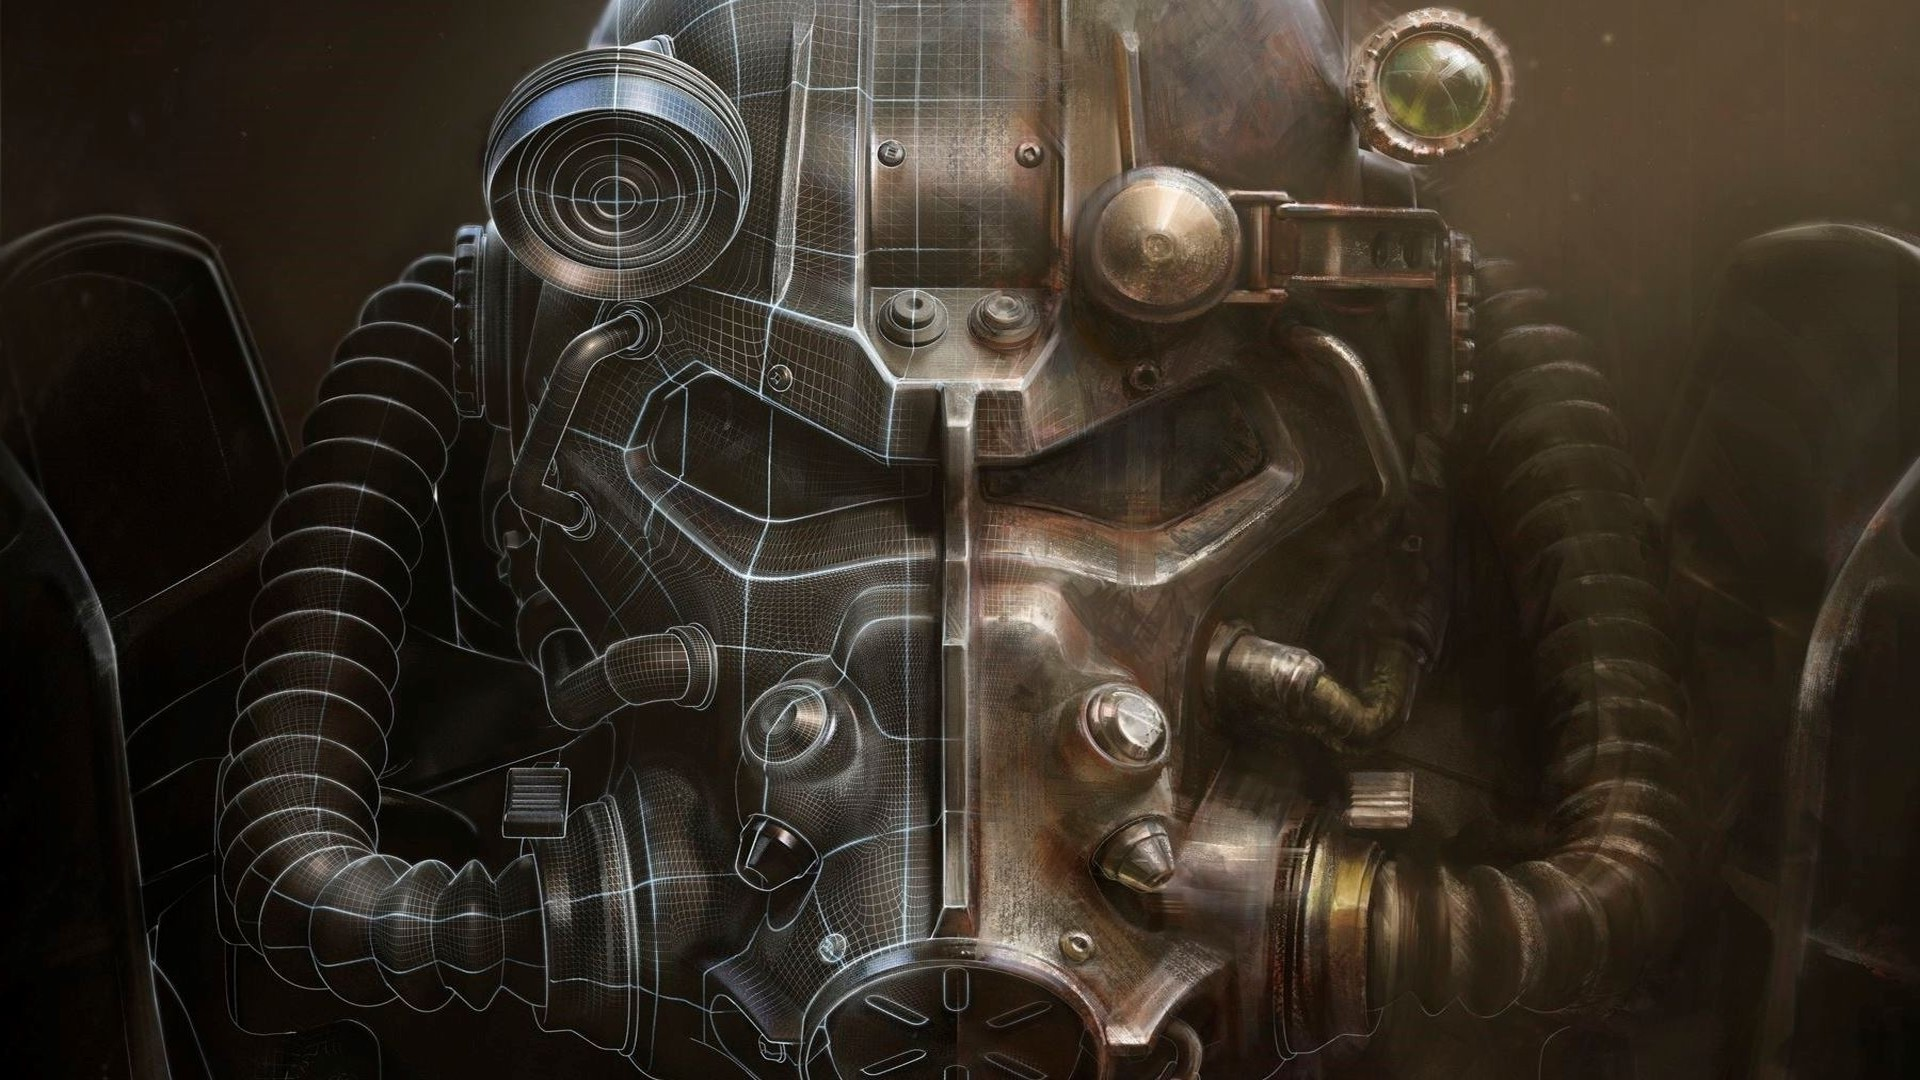 Fallout 4 Power Armor Wallpaper (82+ Images